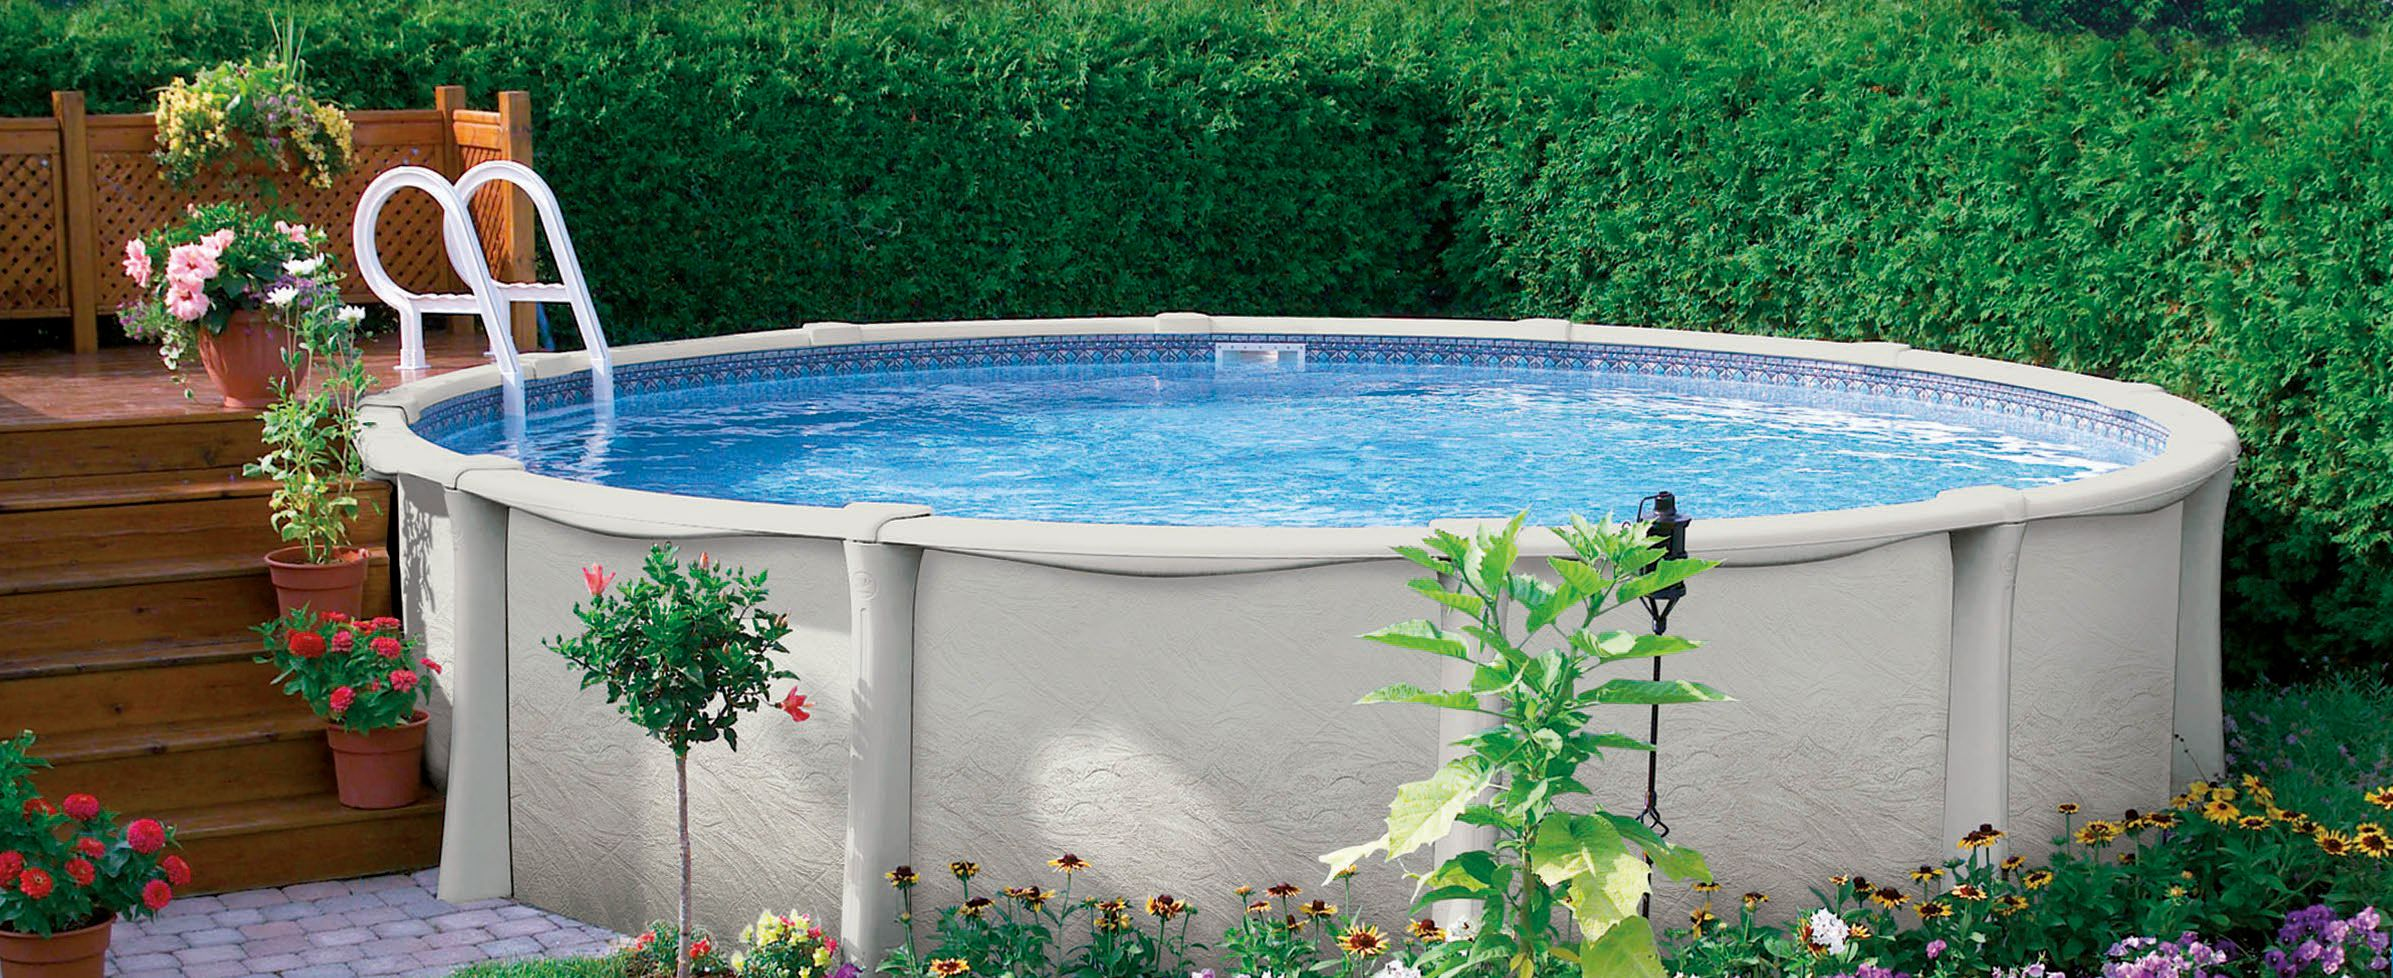 Piscine hors sol piscine for Piscine hors sol blooma